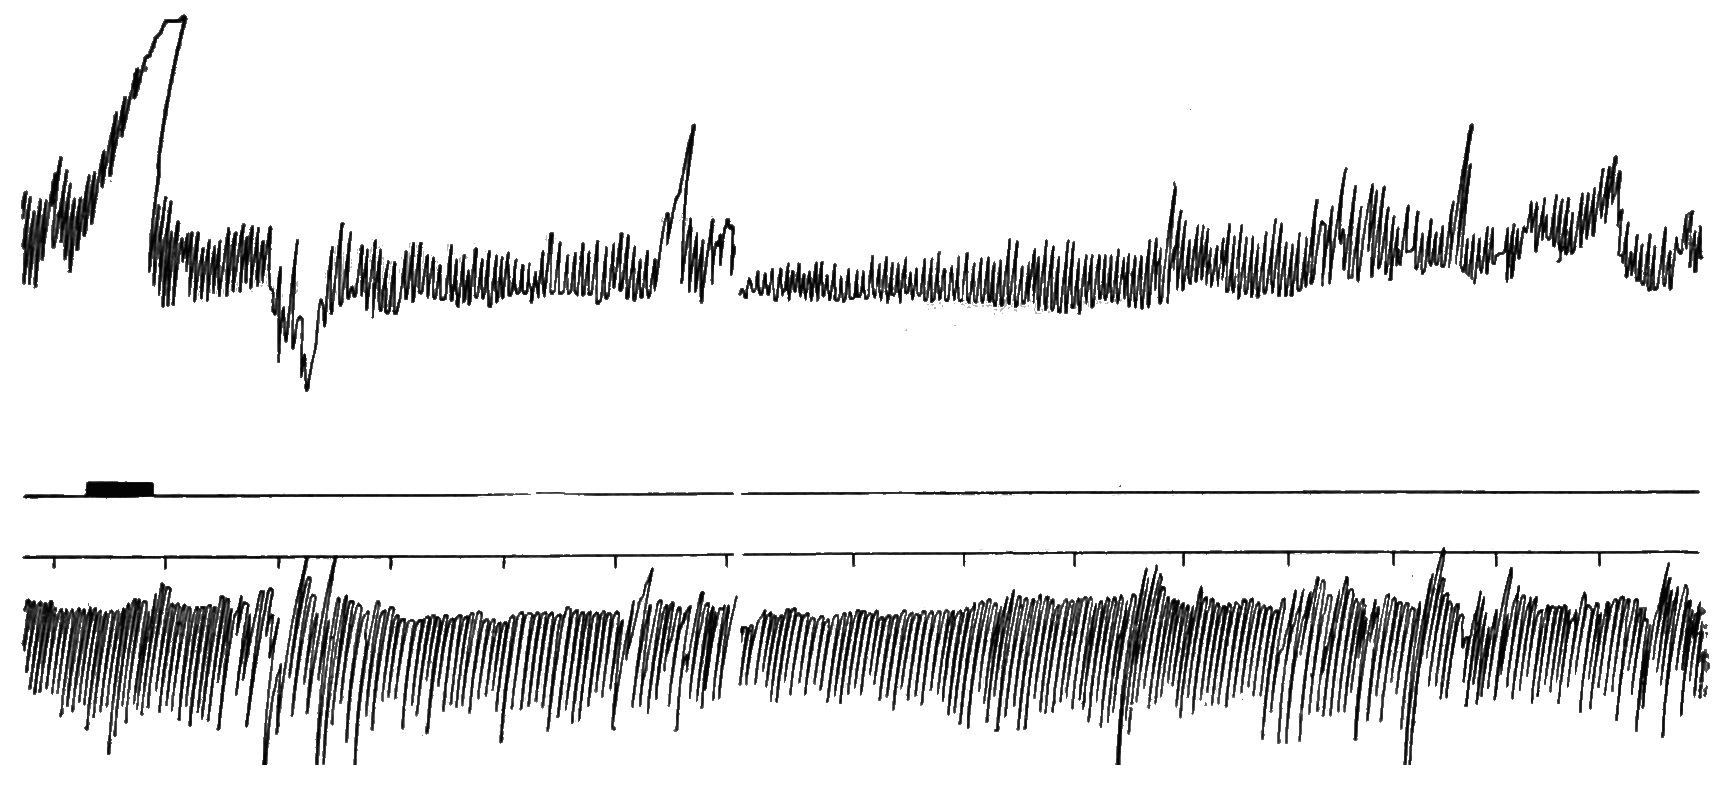 PSM V81 D311 Intragastric oscillations of hunger recorded by a pneumograph.png